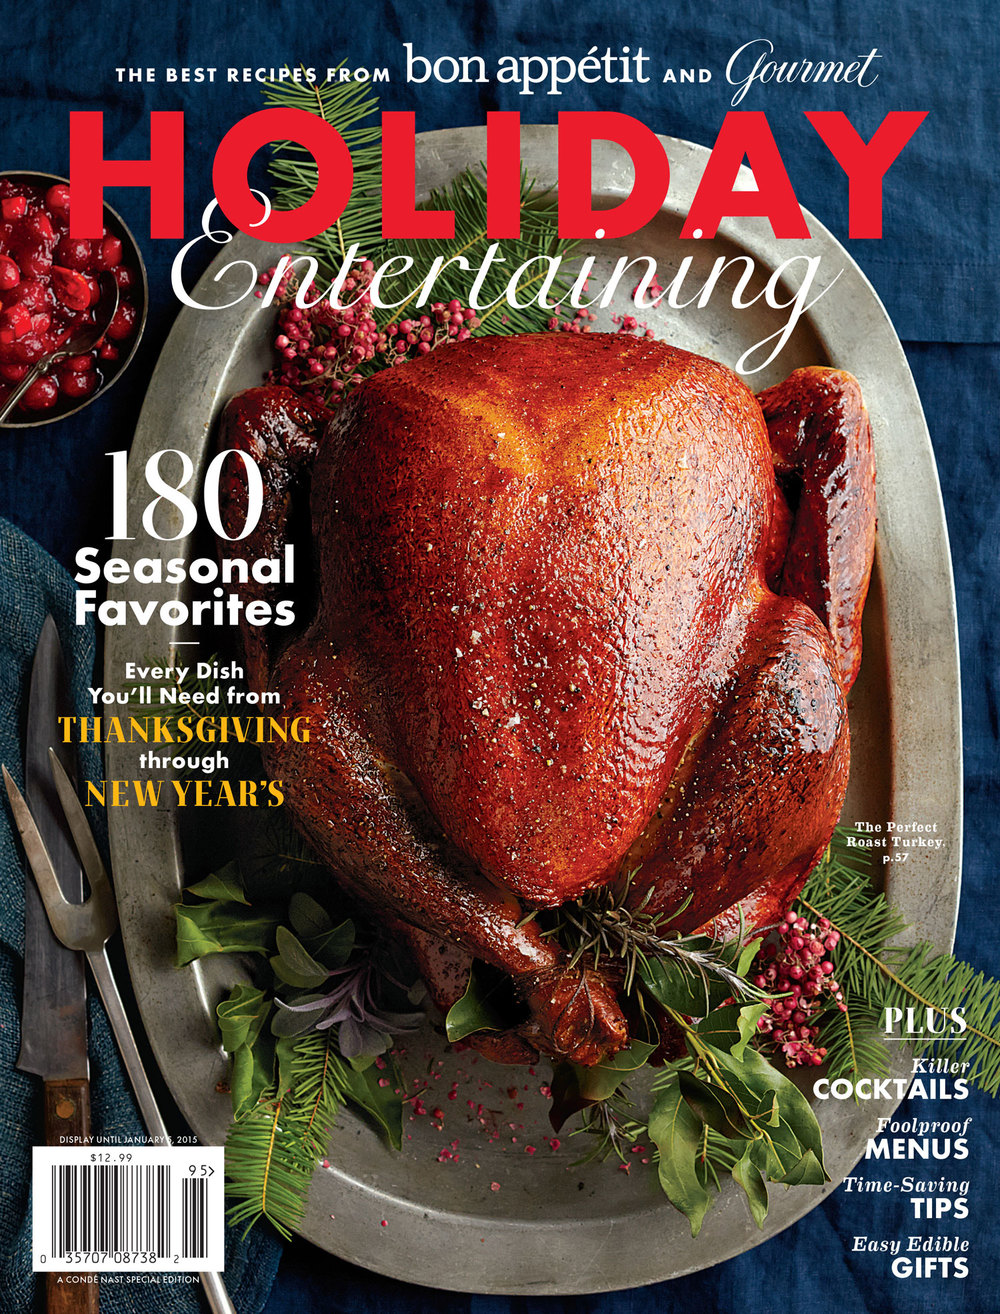 HolidayEntertaining2014Cover.jpg